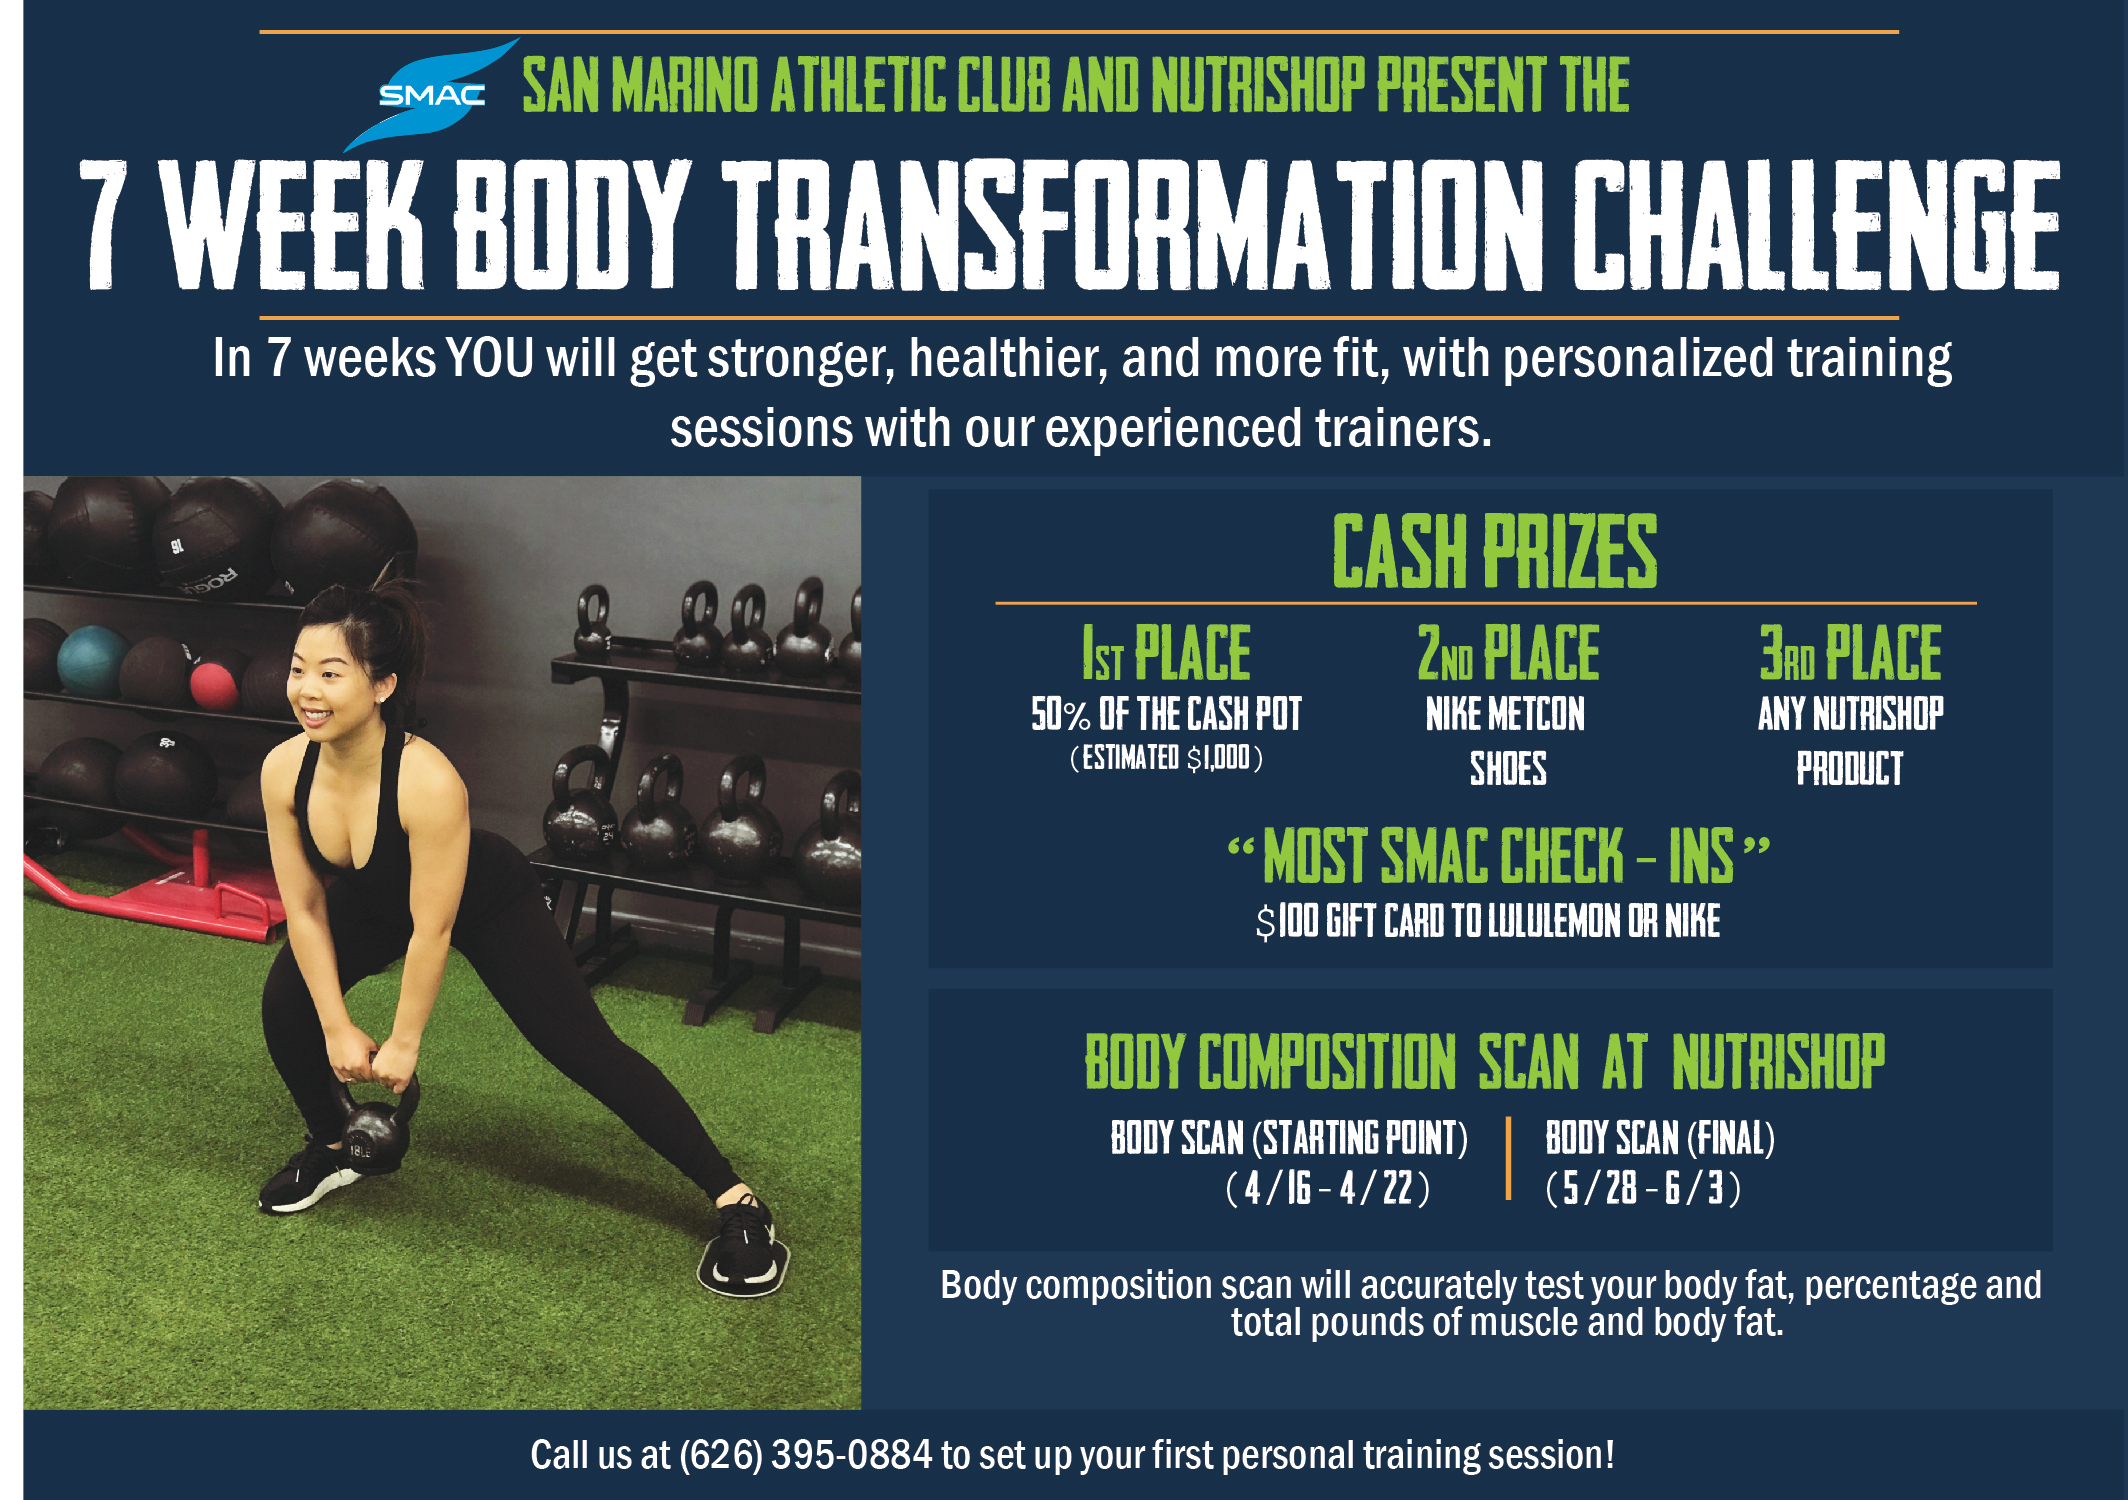 7 week challenge kelly poster 2.jpg